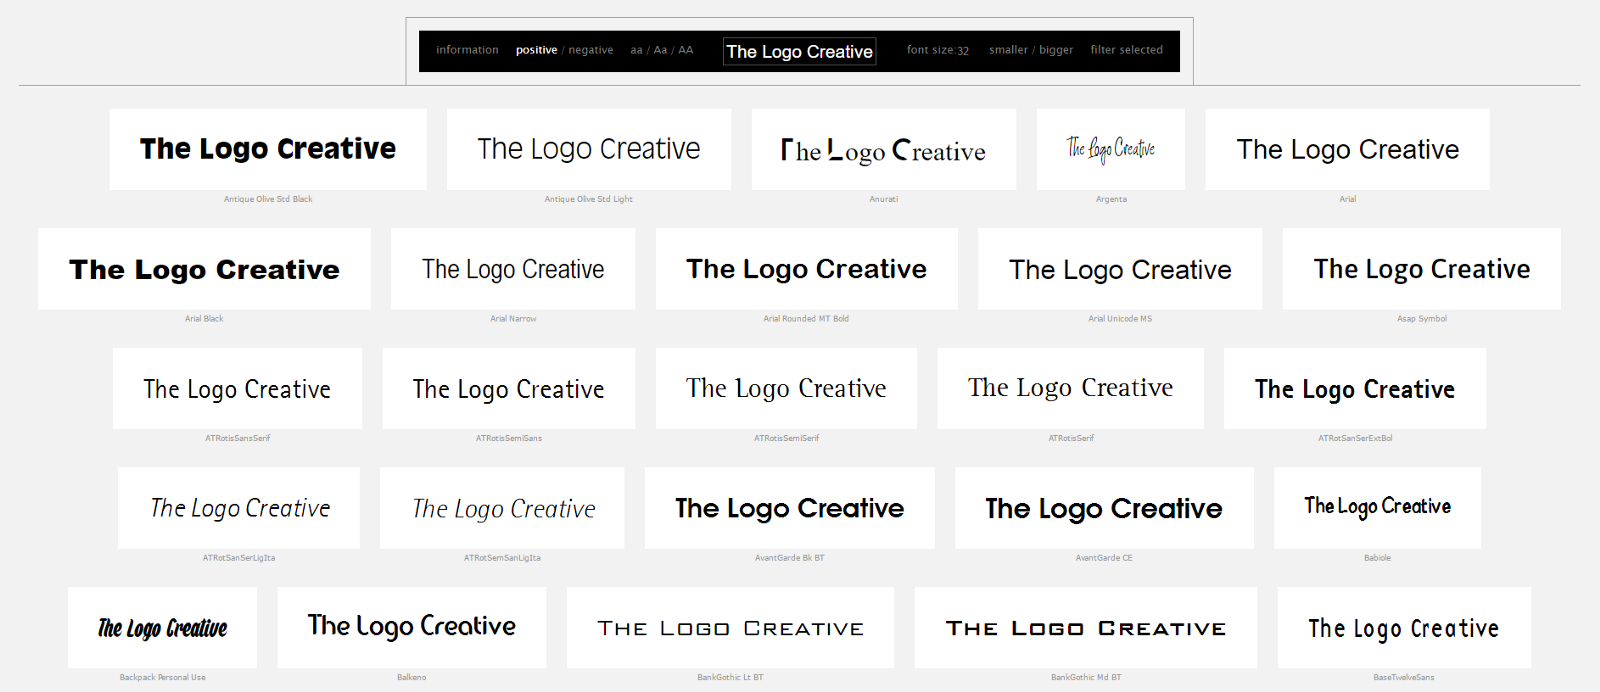 wordmark it to Help Choose Fonts From Your Library – The Logo